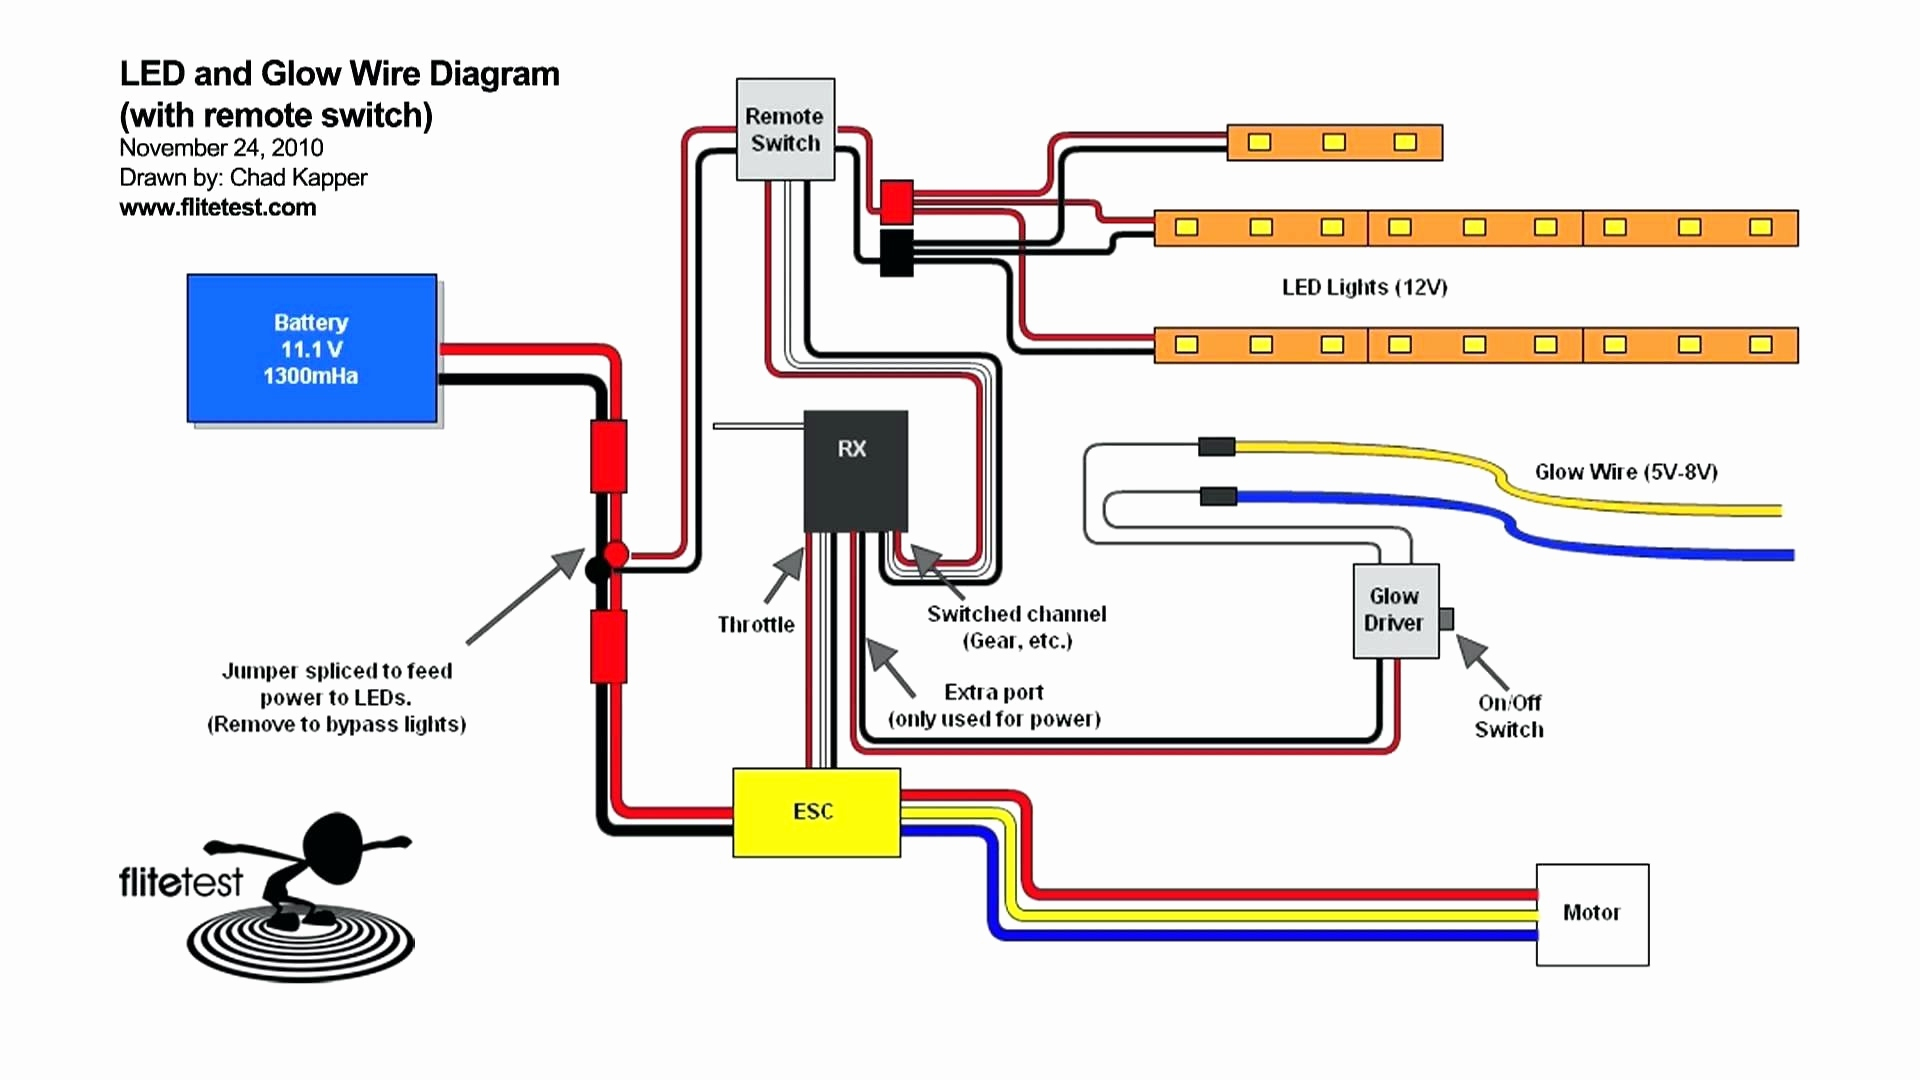 Led Light 12V 3 Wire Wiring Diagram | Wiring Diagram - 3 Wire Led Tail Light Wiring Diagram